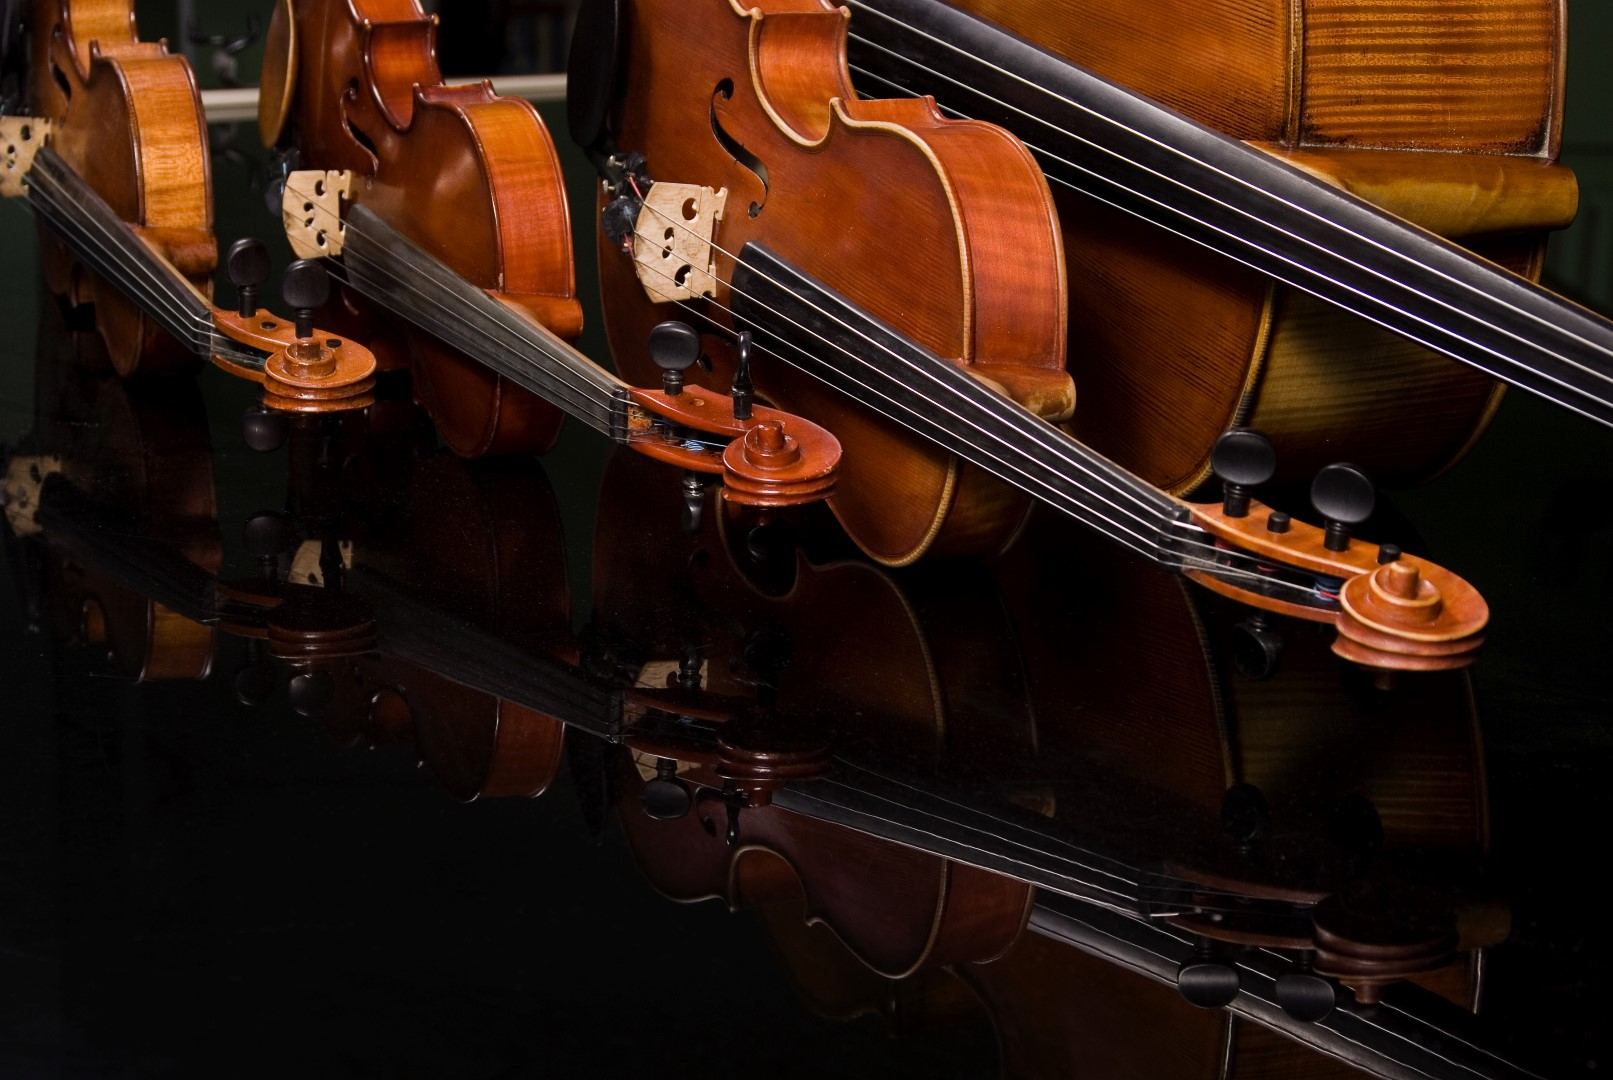 How to Choose a Violin: 7 Expert Tips from a Luthier